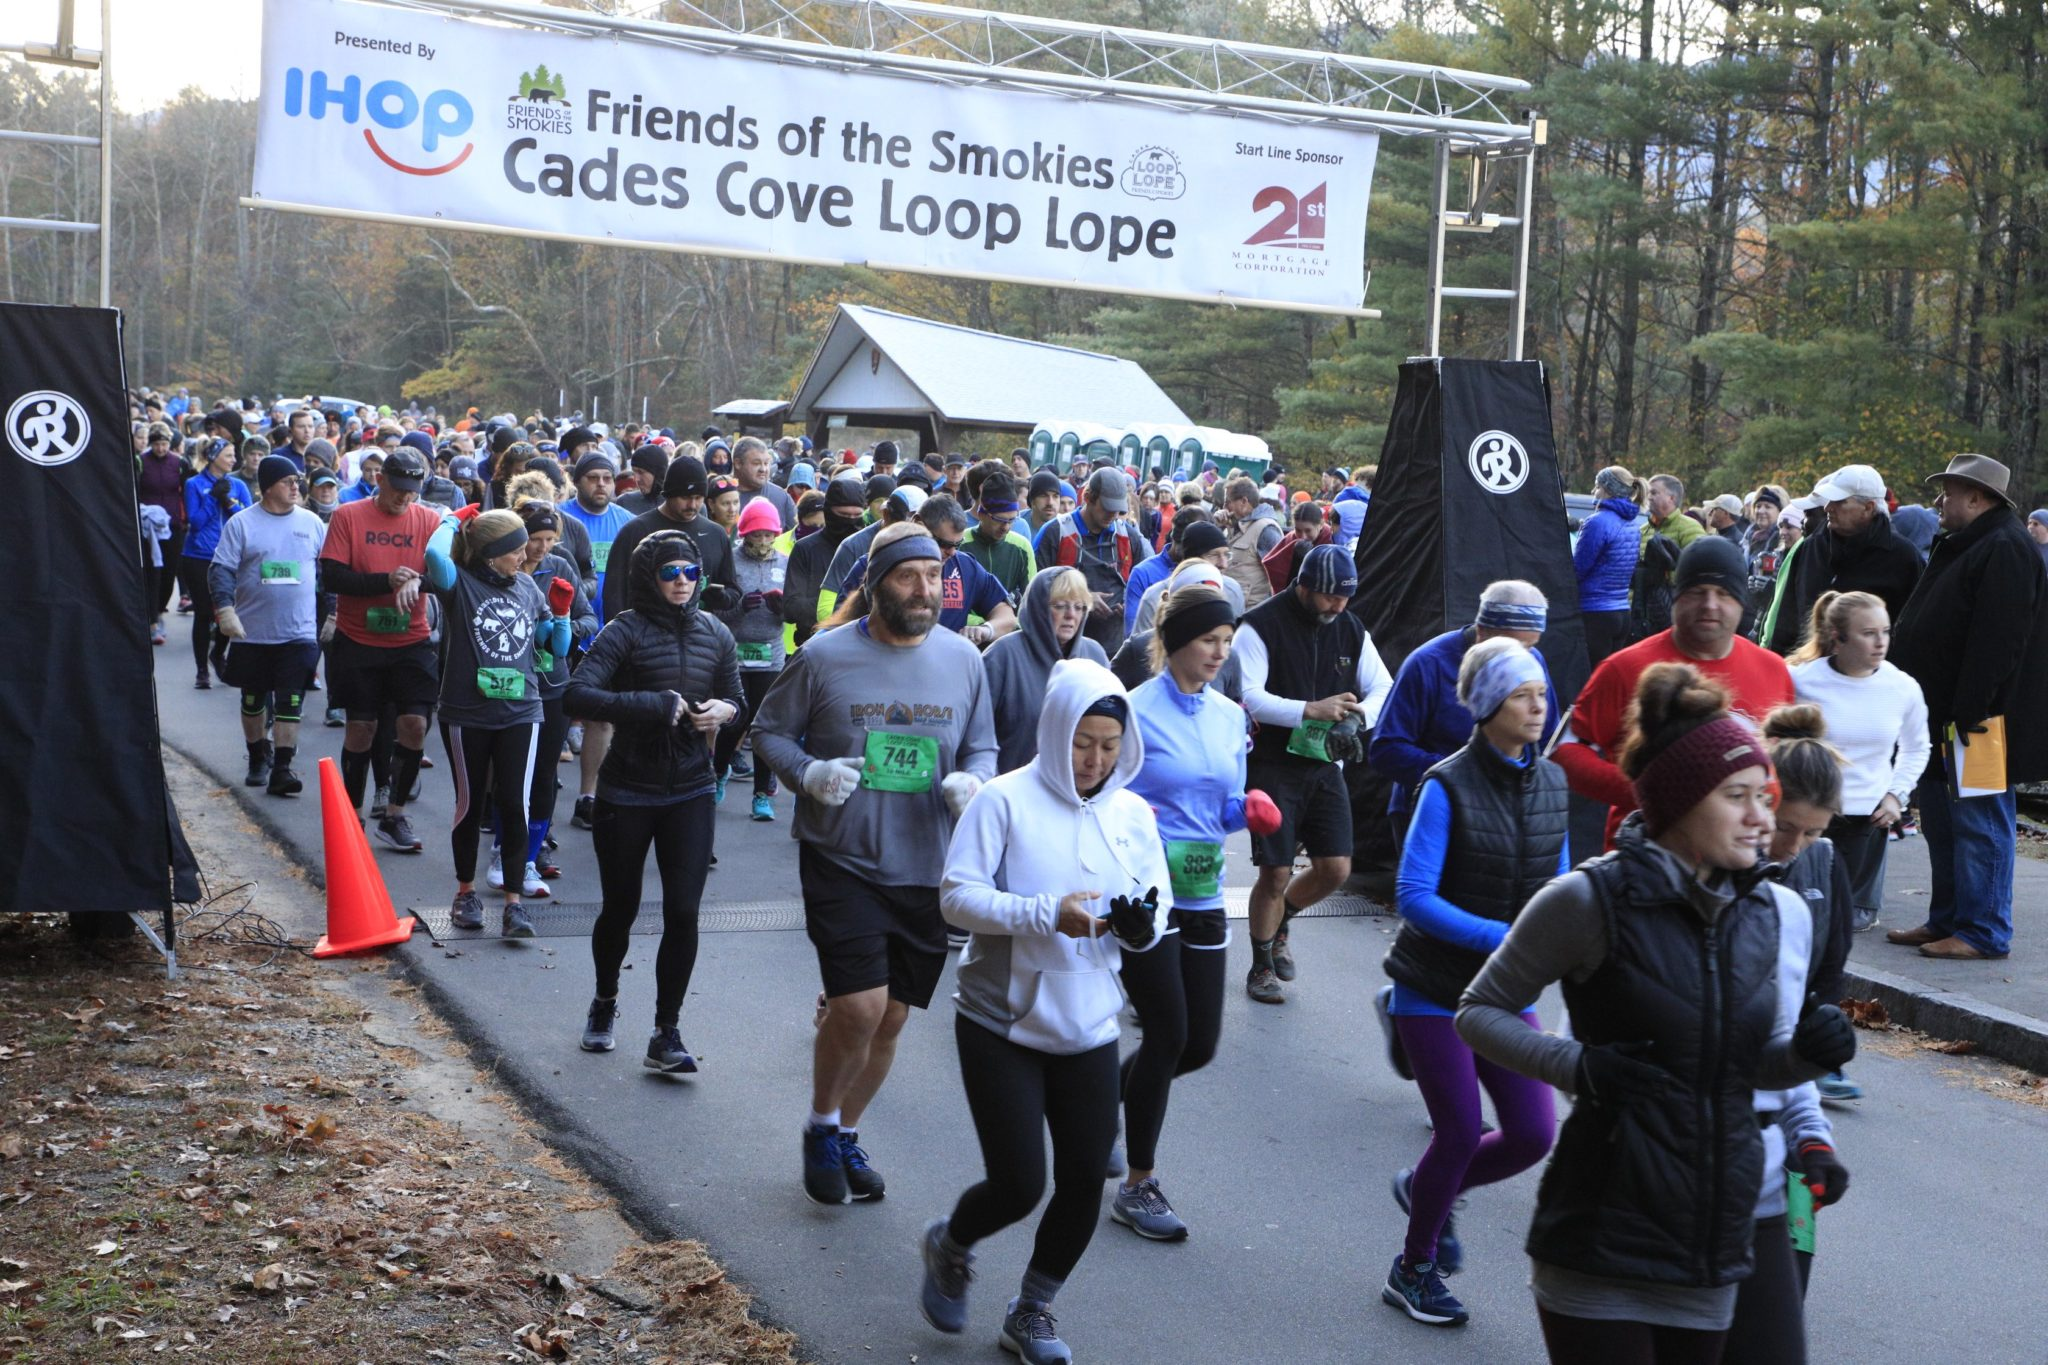 Cades Cove Loop Lope start - photo by Horace Hamilton